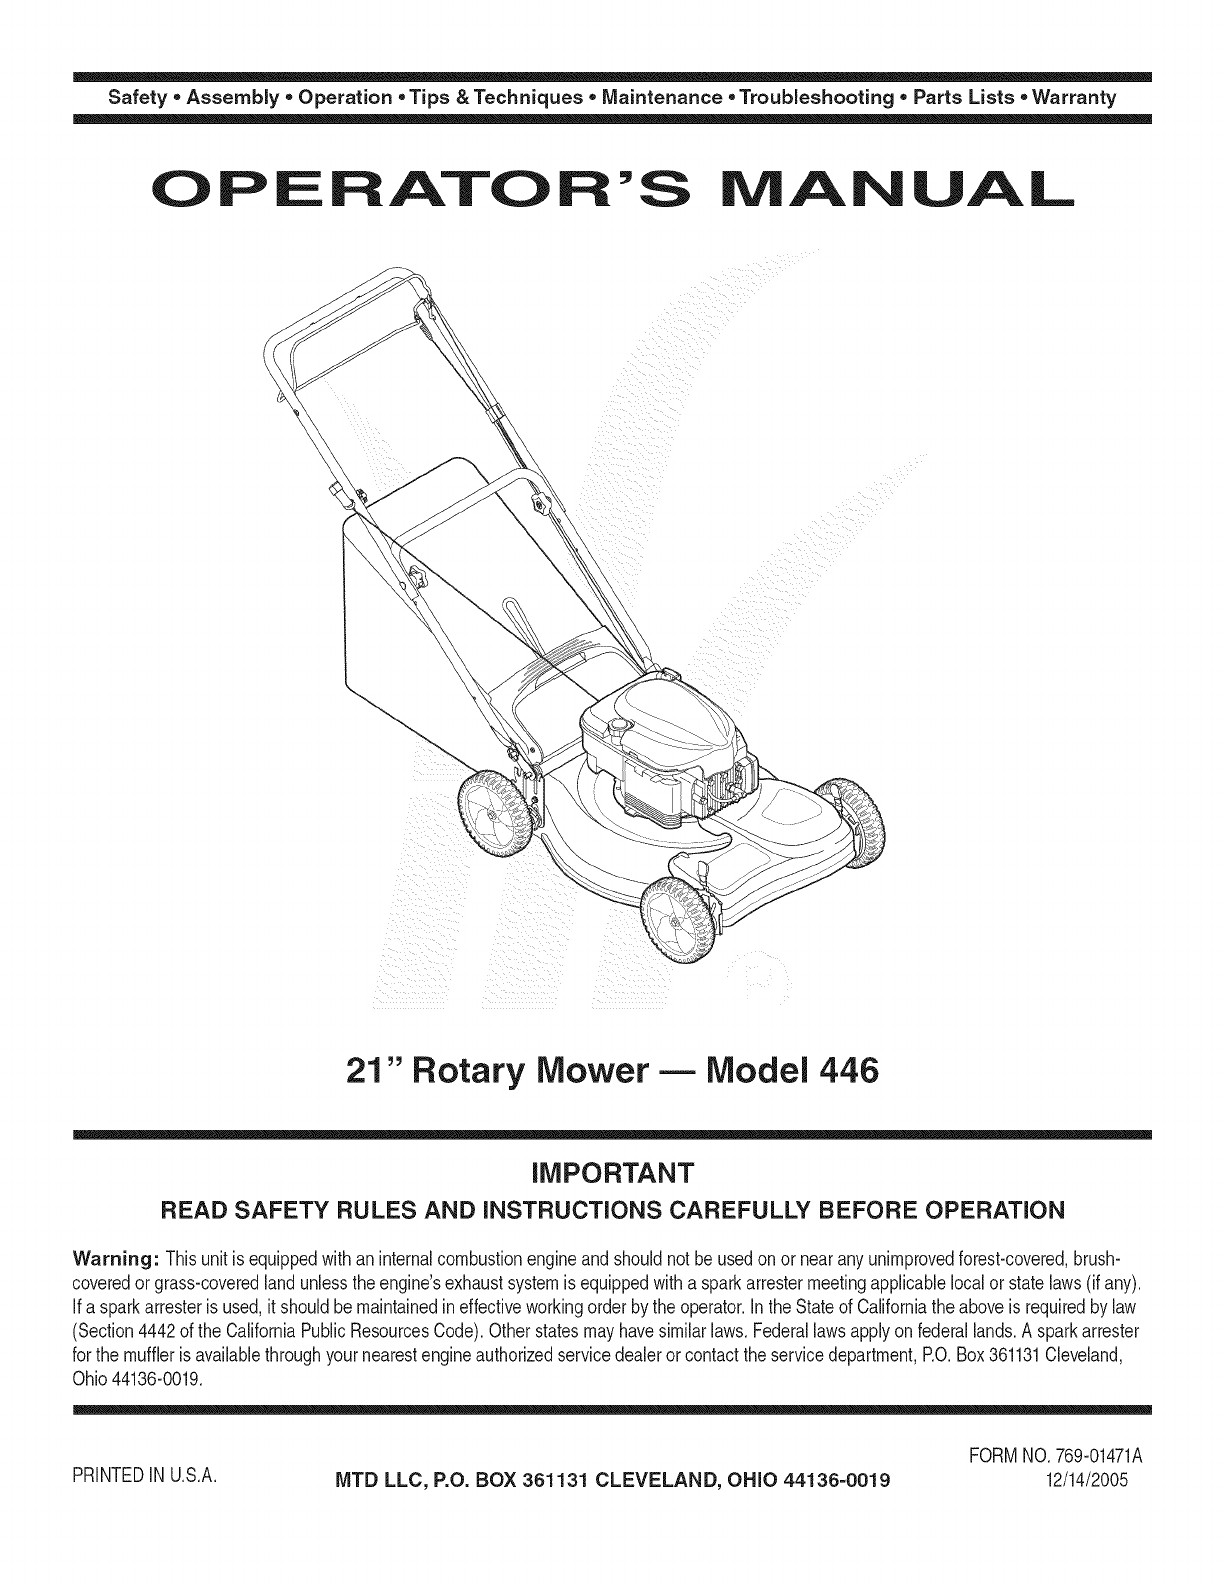 Small Engine Parts Diagram Mtd 12a 446b729 User Manual Lawn Mower Manuals and Guides L Of Small Engine Parts Diagram Looking for Snapper Model Wm B Rear Engine Riding Mower Repair